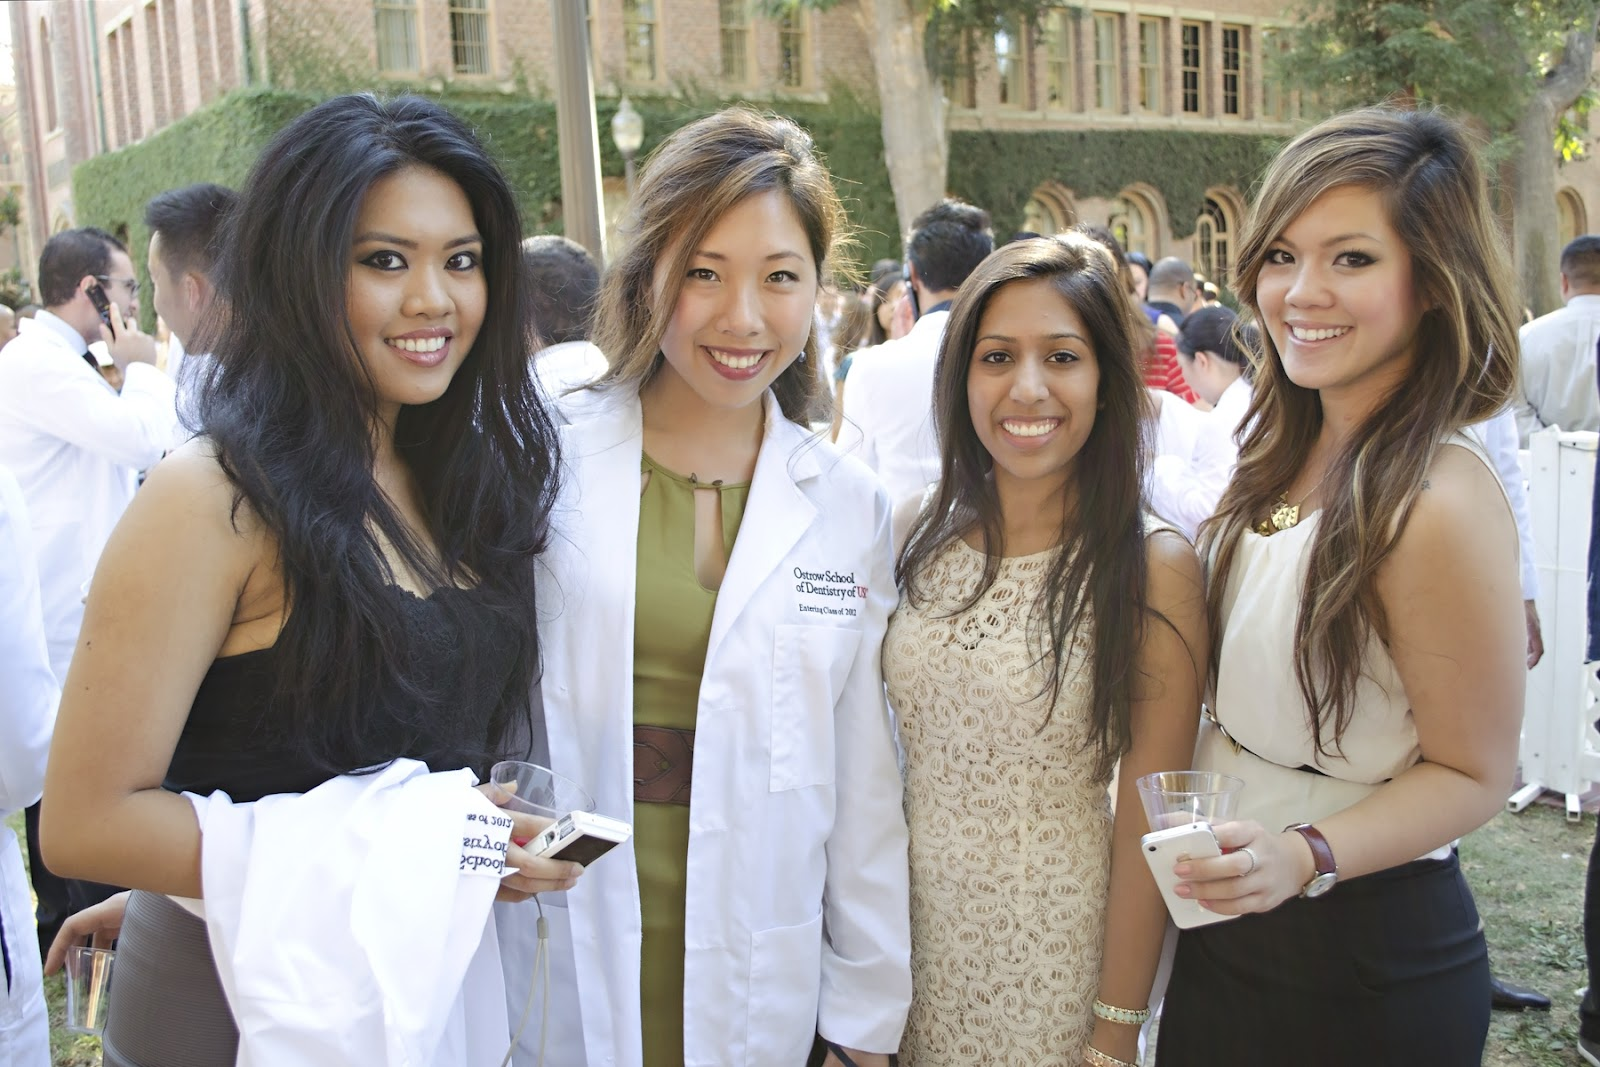 Collection White Coat Ceremony Dress Pictures - Reikian